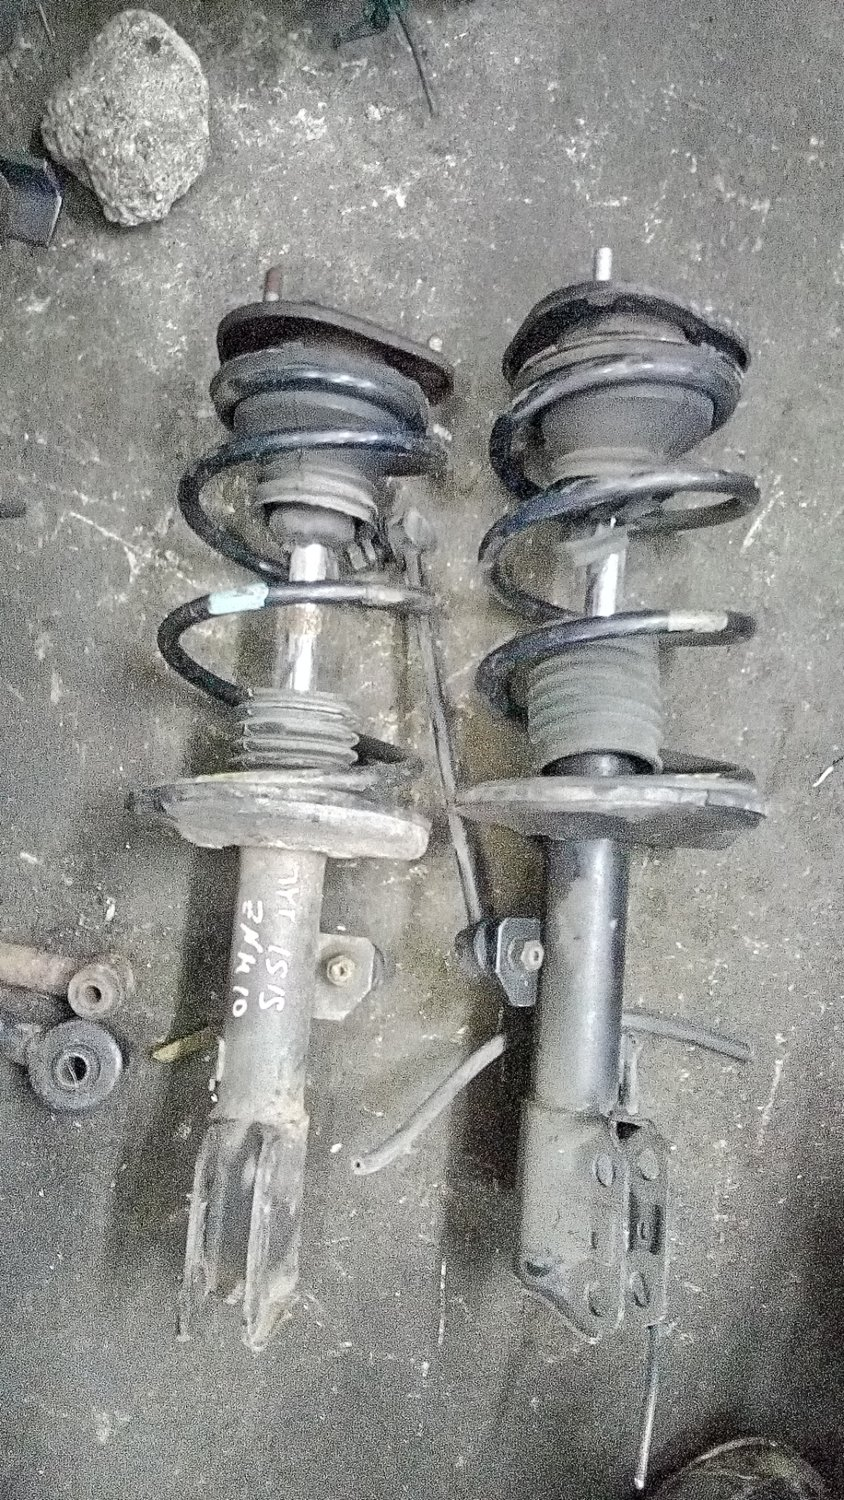 Toyota Isis front shocks